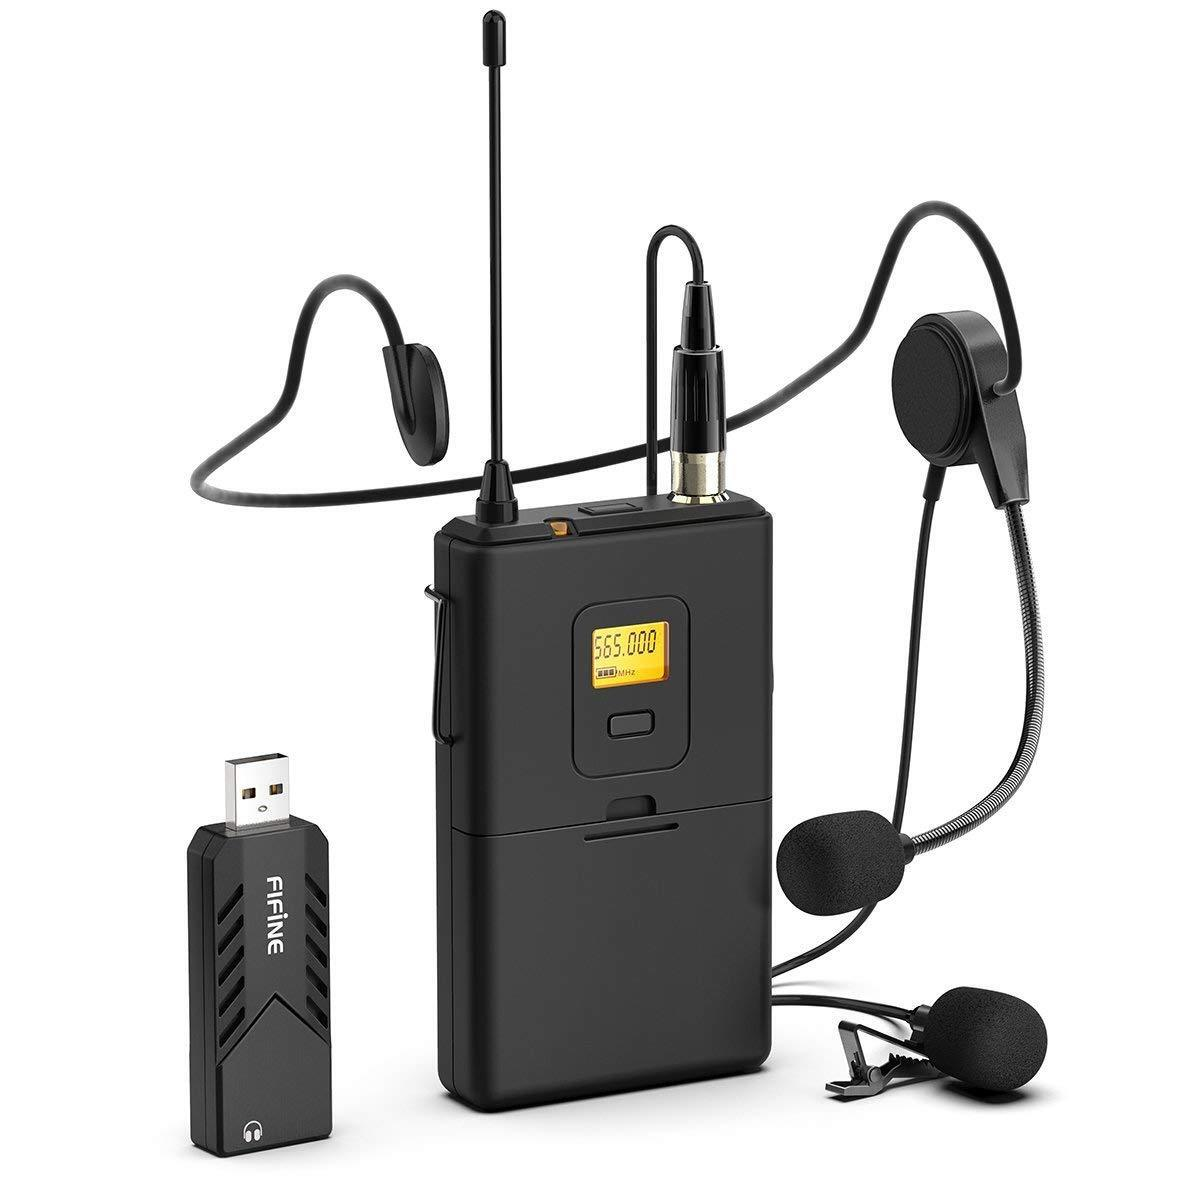 Portable Wireless Lavalier Microphone System For iPhone 6s Plus   iPhone 6s  SE